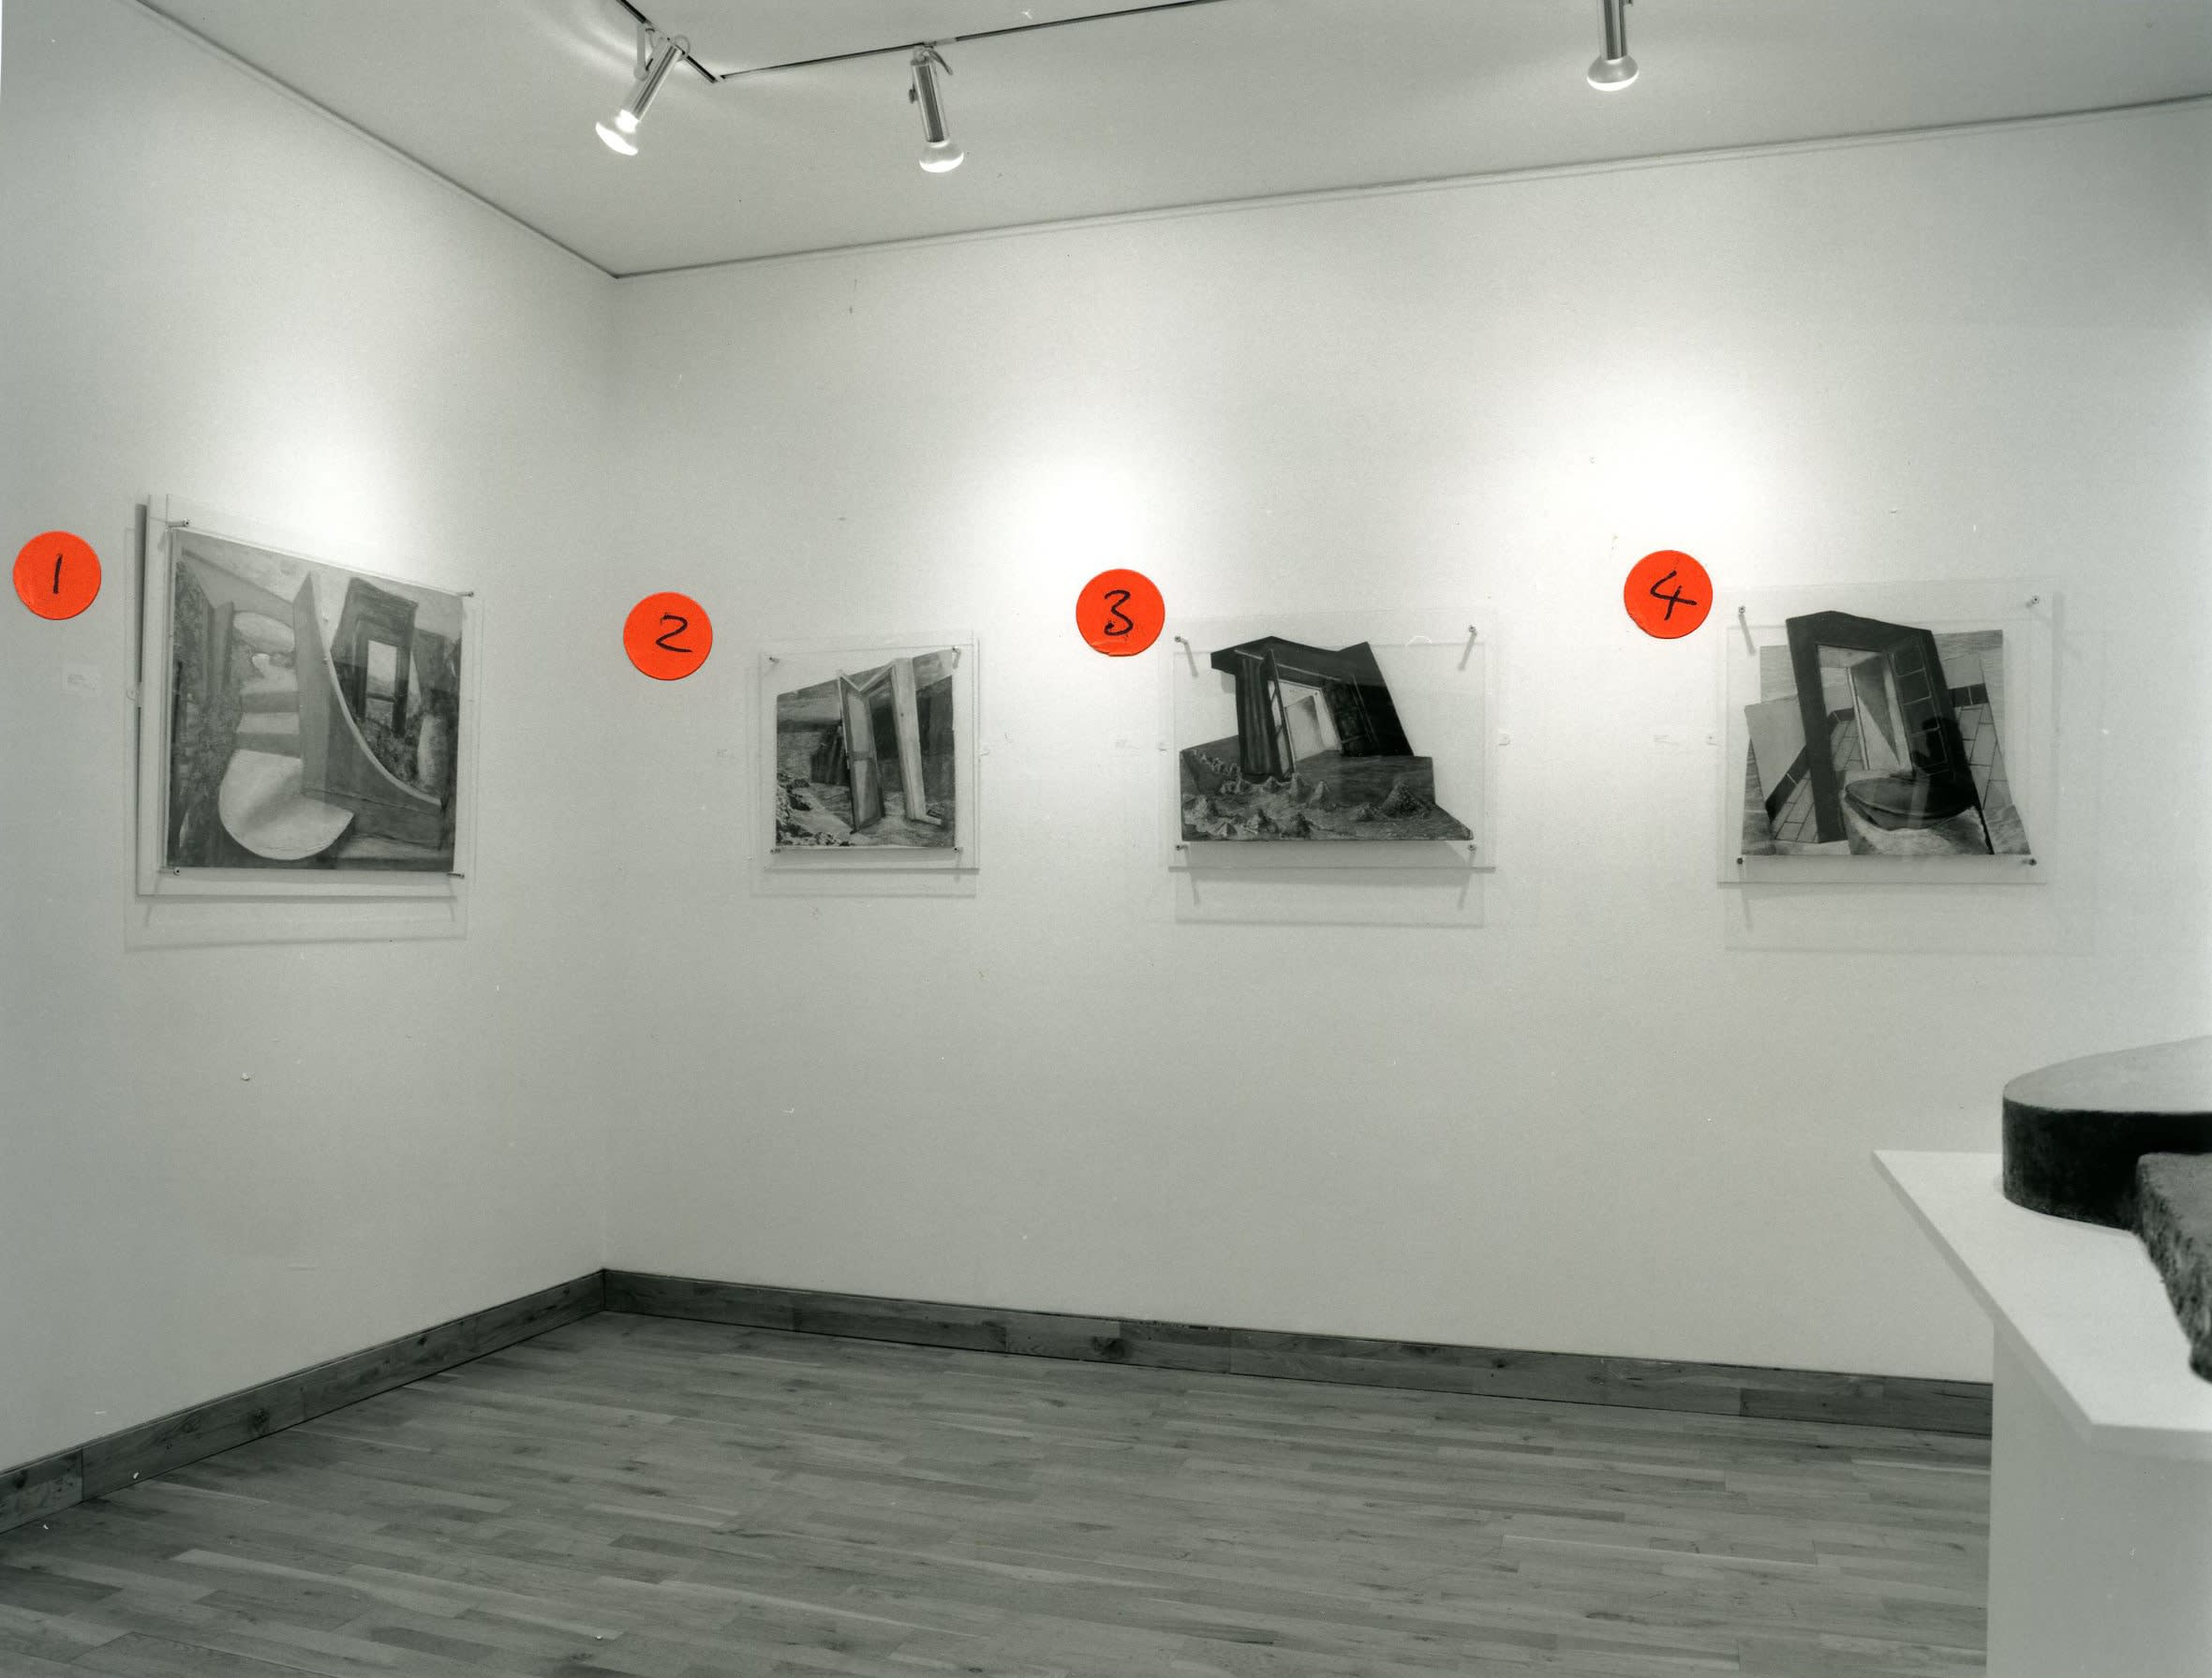 """<span class=""""link fancybox-details-link""""><a href=""""/exhibitions/163/works/image_standalone718/"""">View Detail Page</a></span><p>IVOR ABRAHAMS RA 